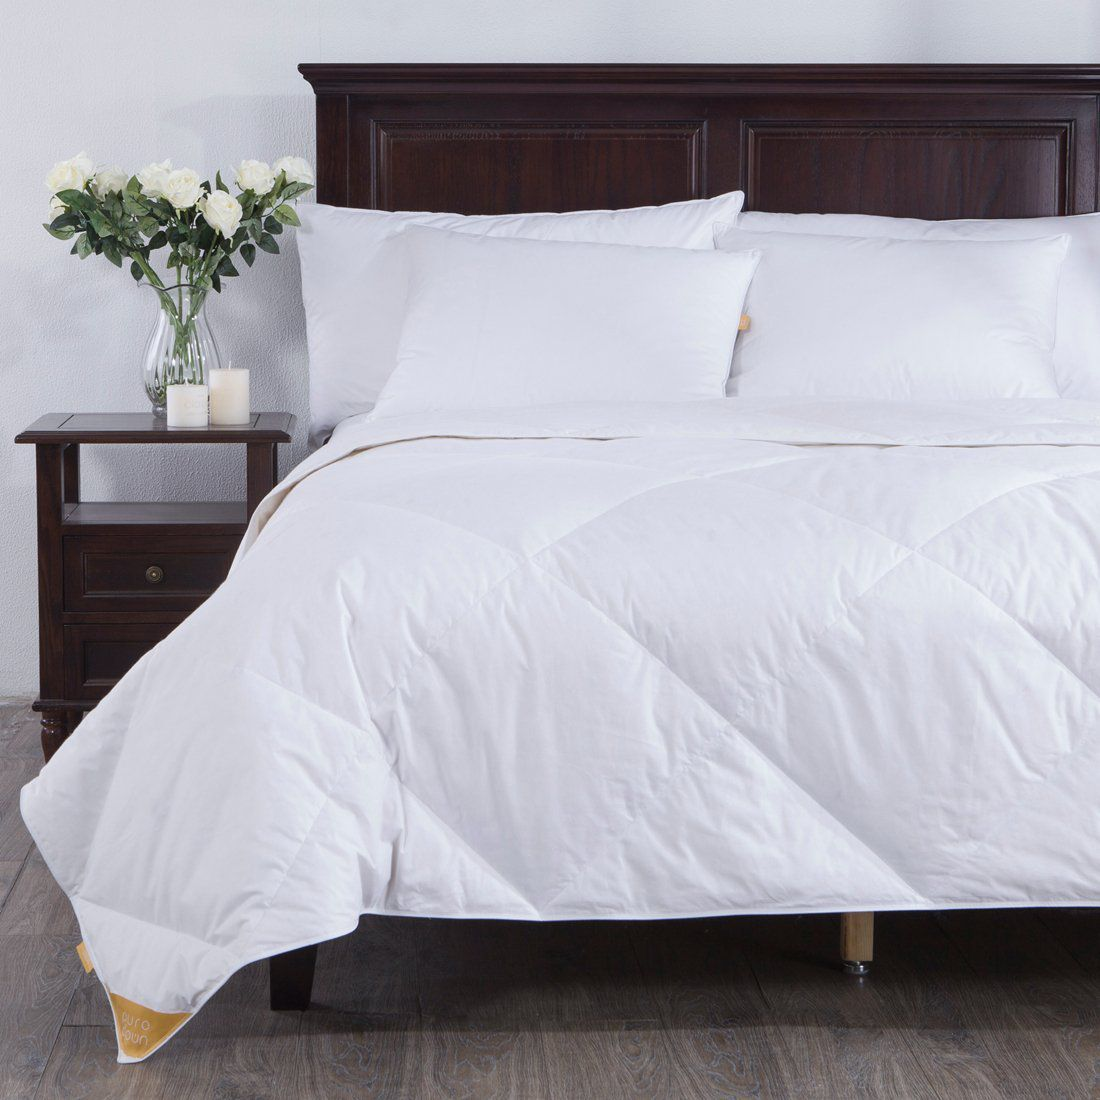 8 Bed Making Mistakes And How To Fix Them Fold Fitted Sheets Diagram